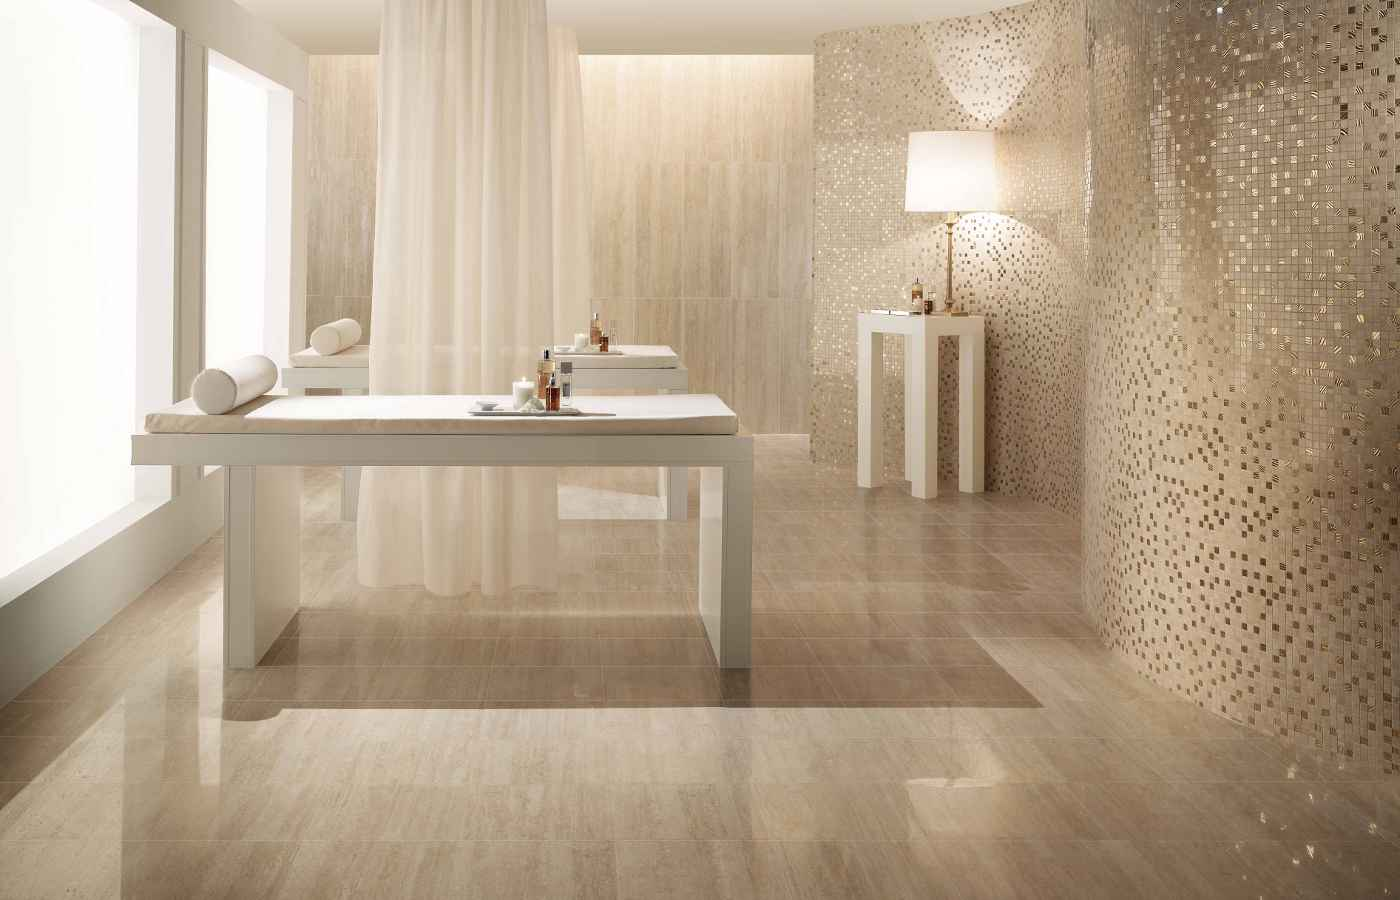 Porcelain tile flooring benefits Porcelain tile flooring